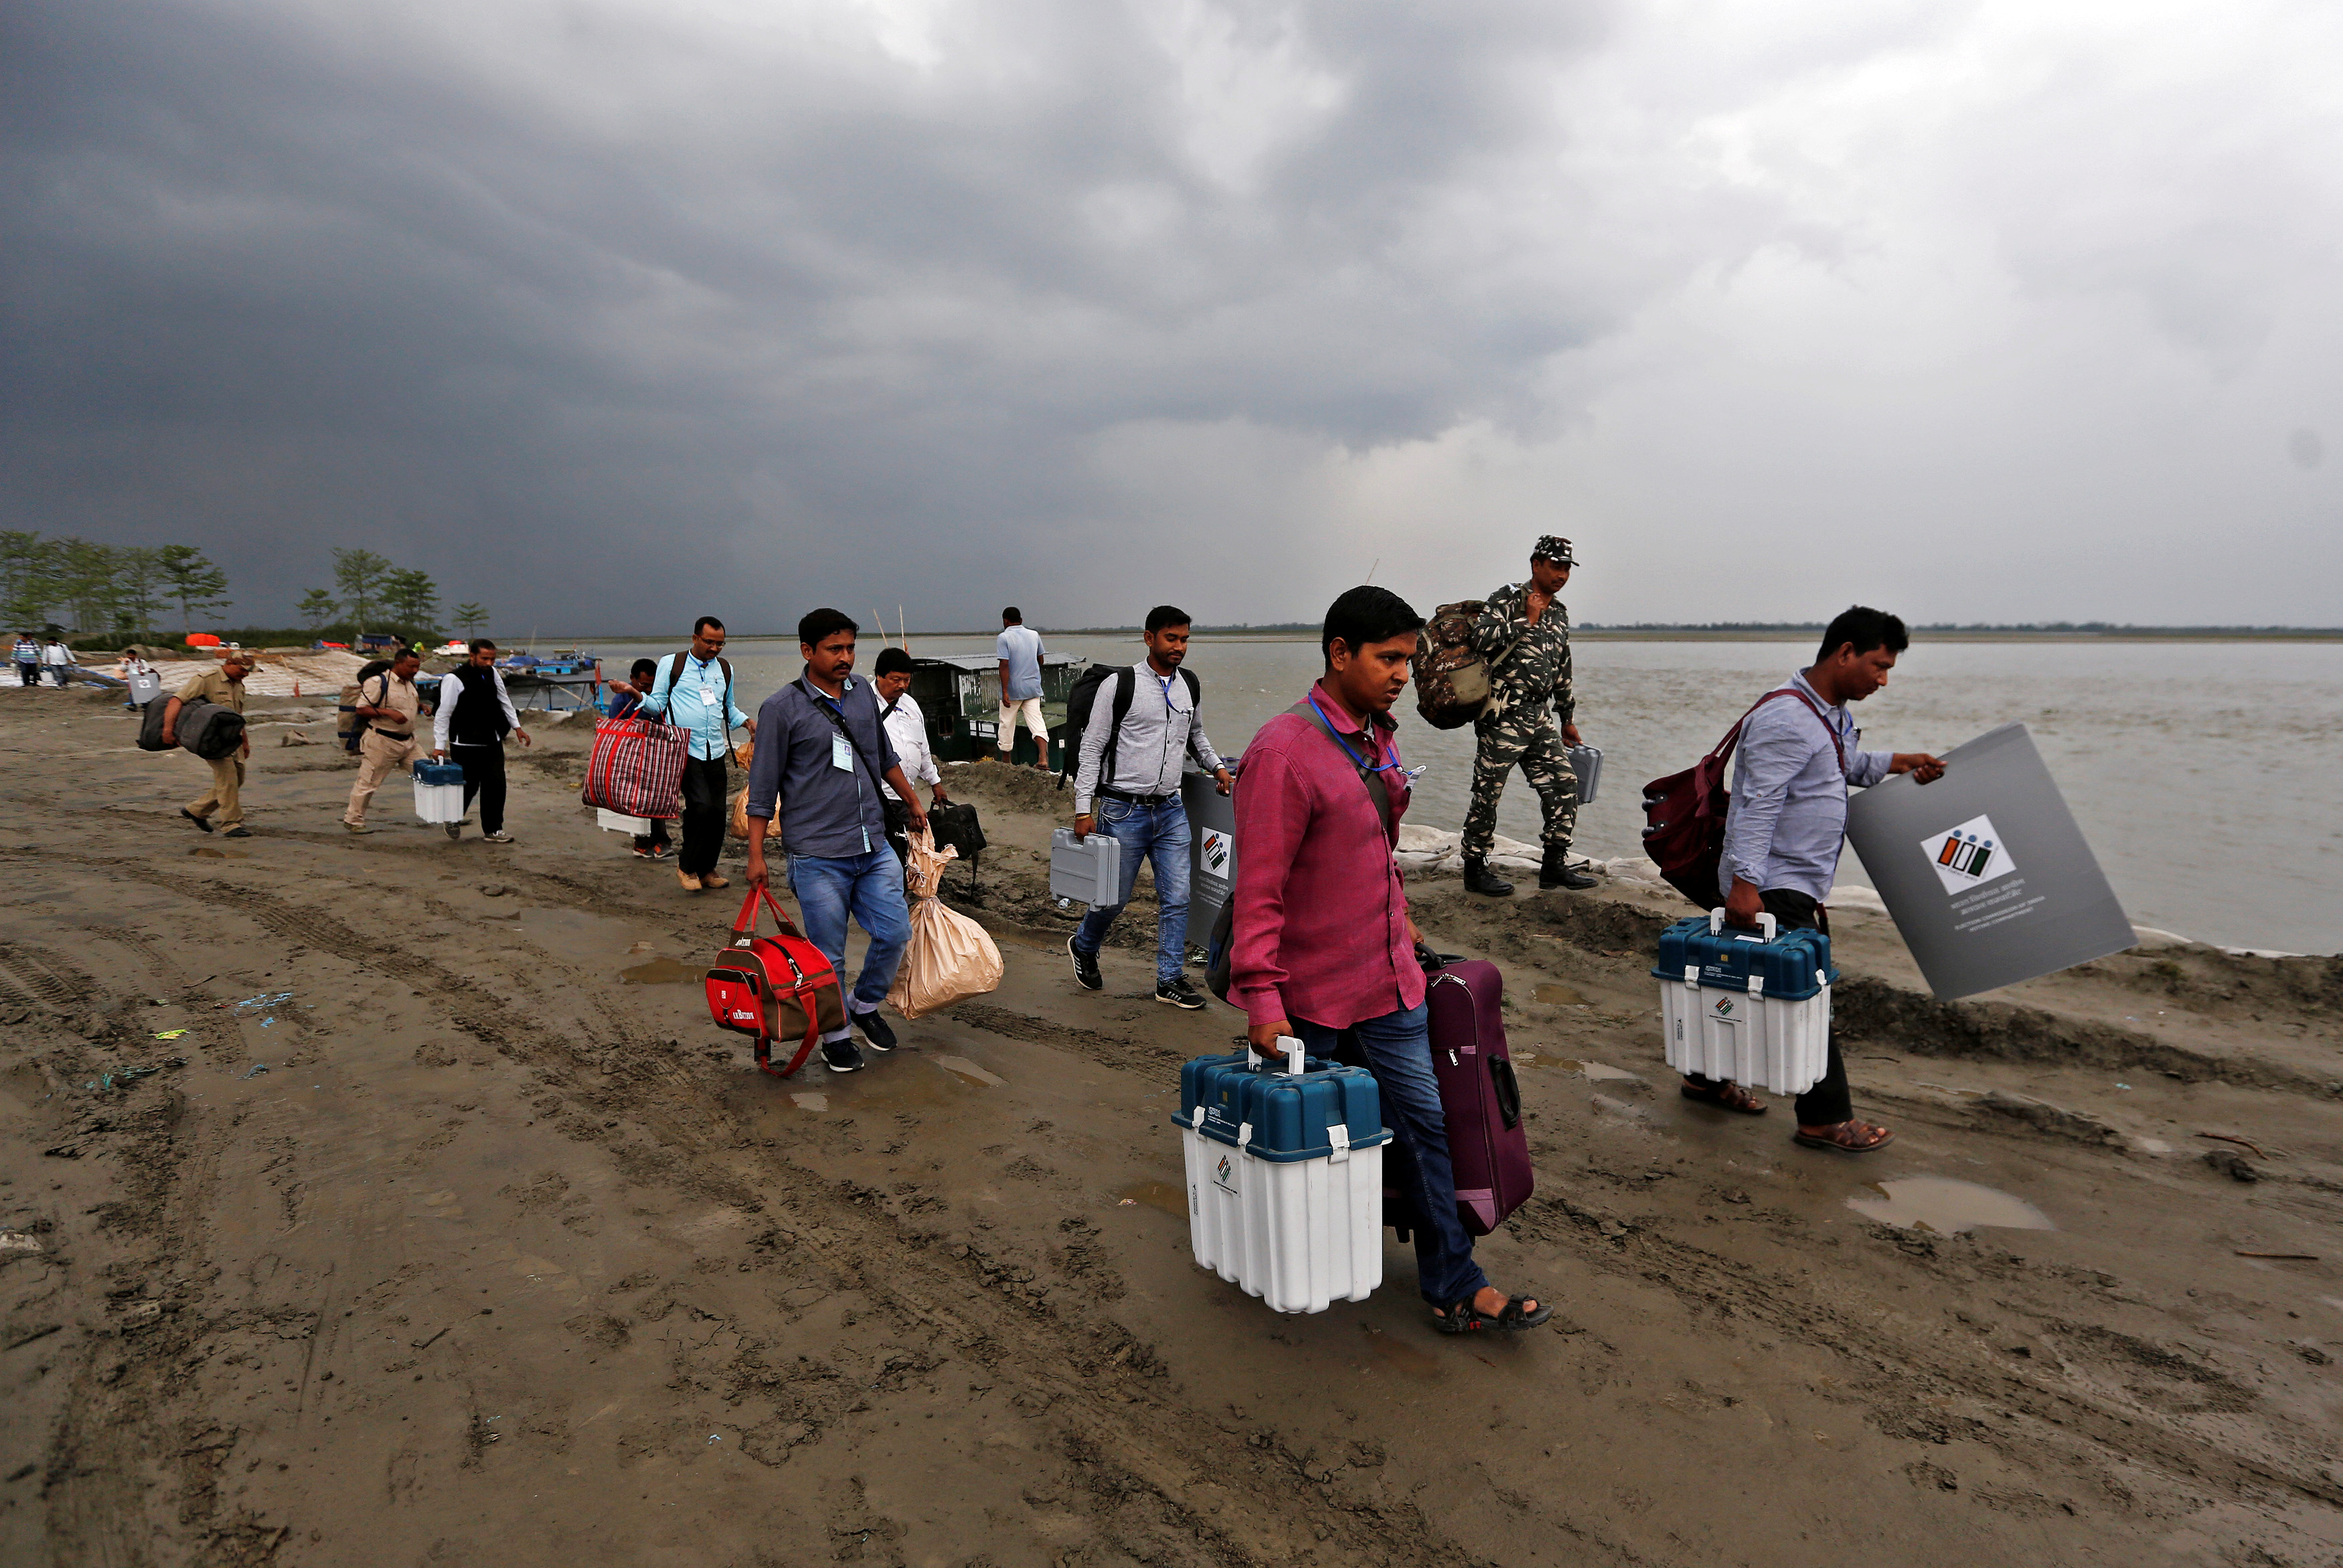 Polling officers carry electronic voting machine (EVM) towards their vehicles after arriving on a ferryboat in Nimatighat, Jorhat district, in the northeastern Indian state of Assam, India, Apr. 9, 2019.